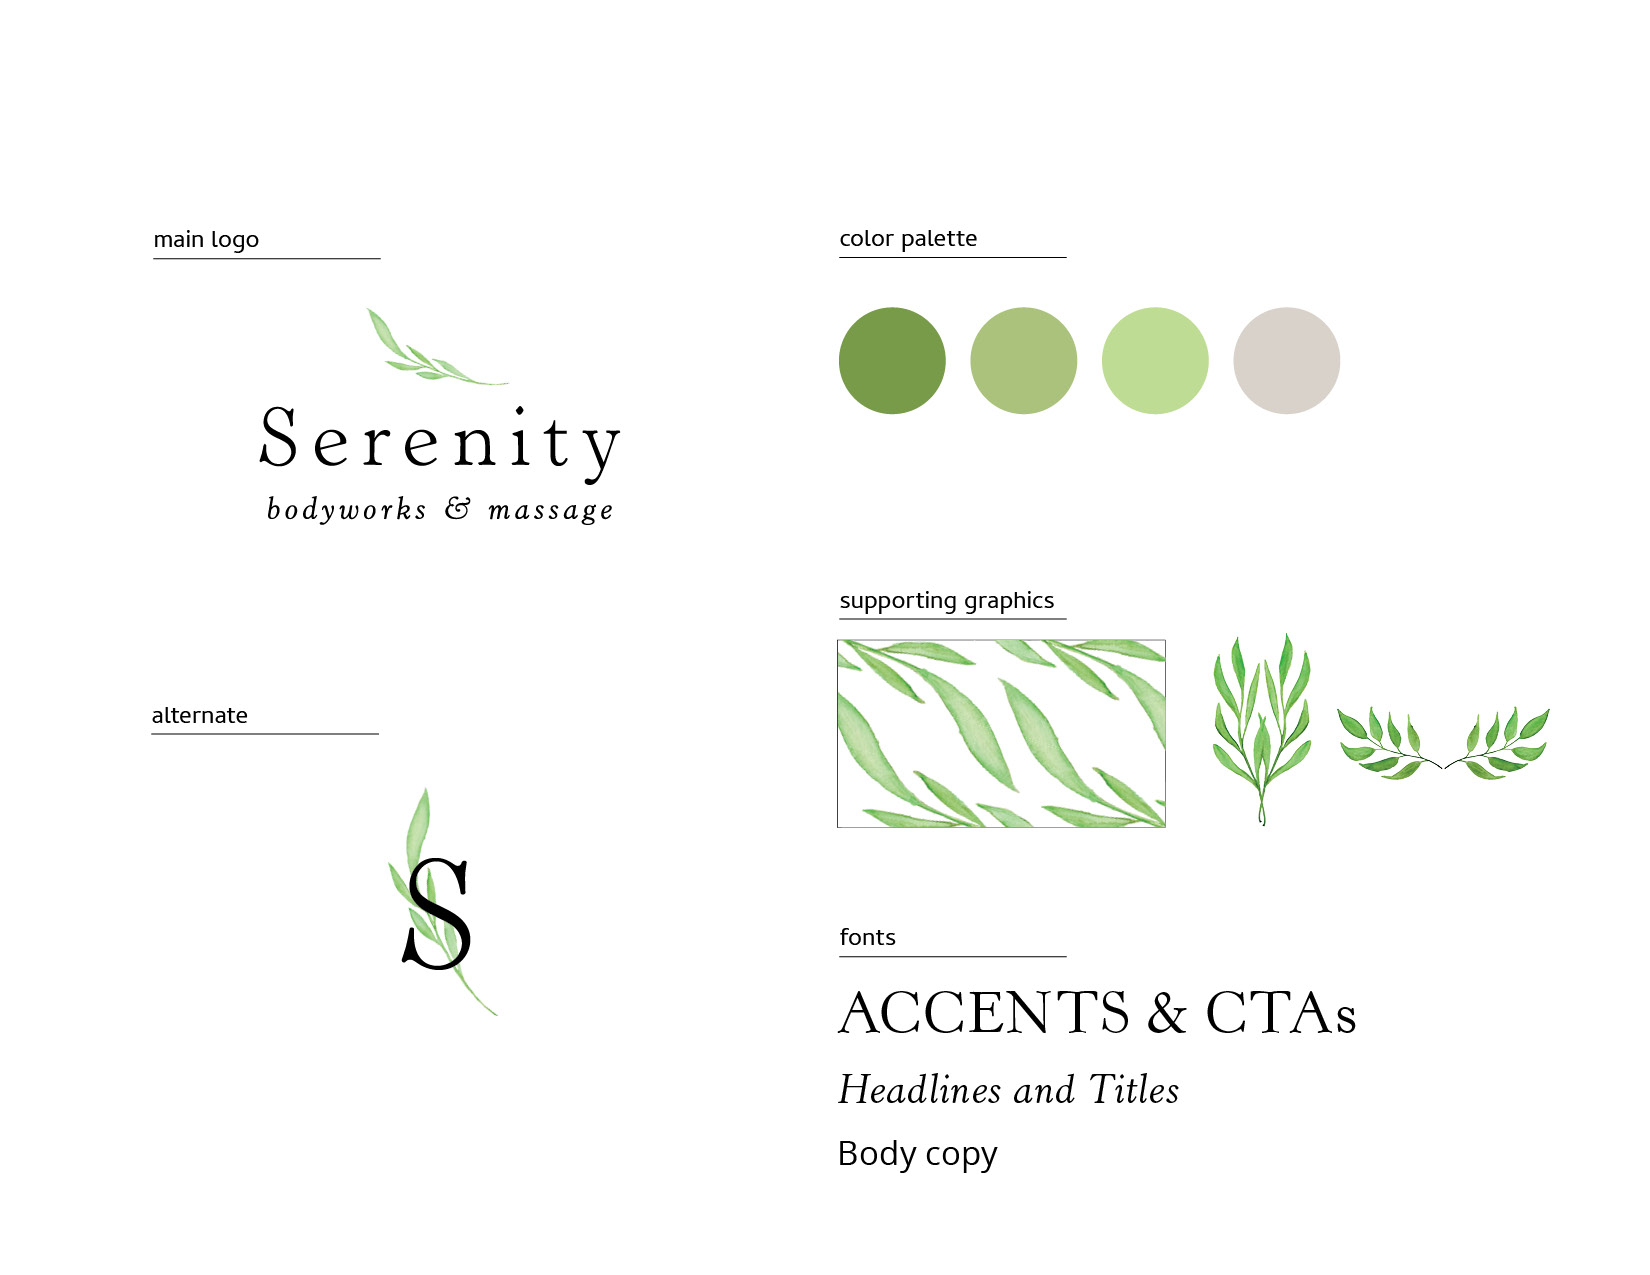 Serenity Body Works and Massage Brand Elements